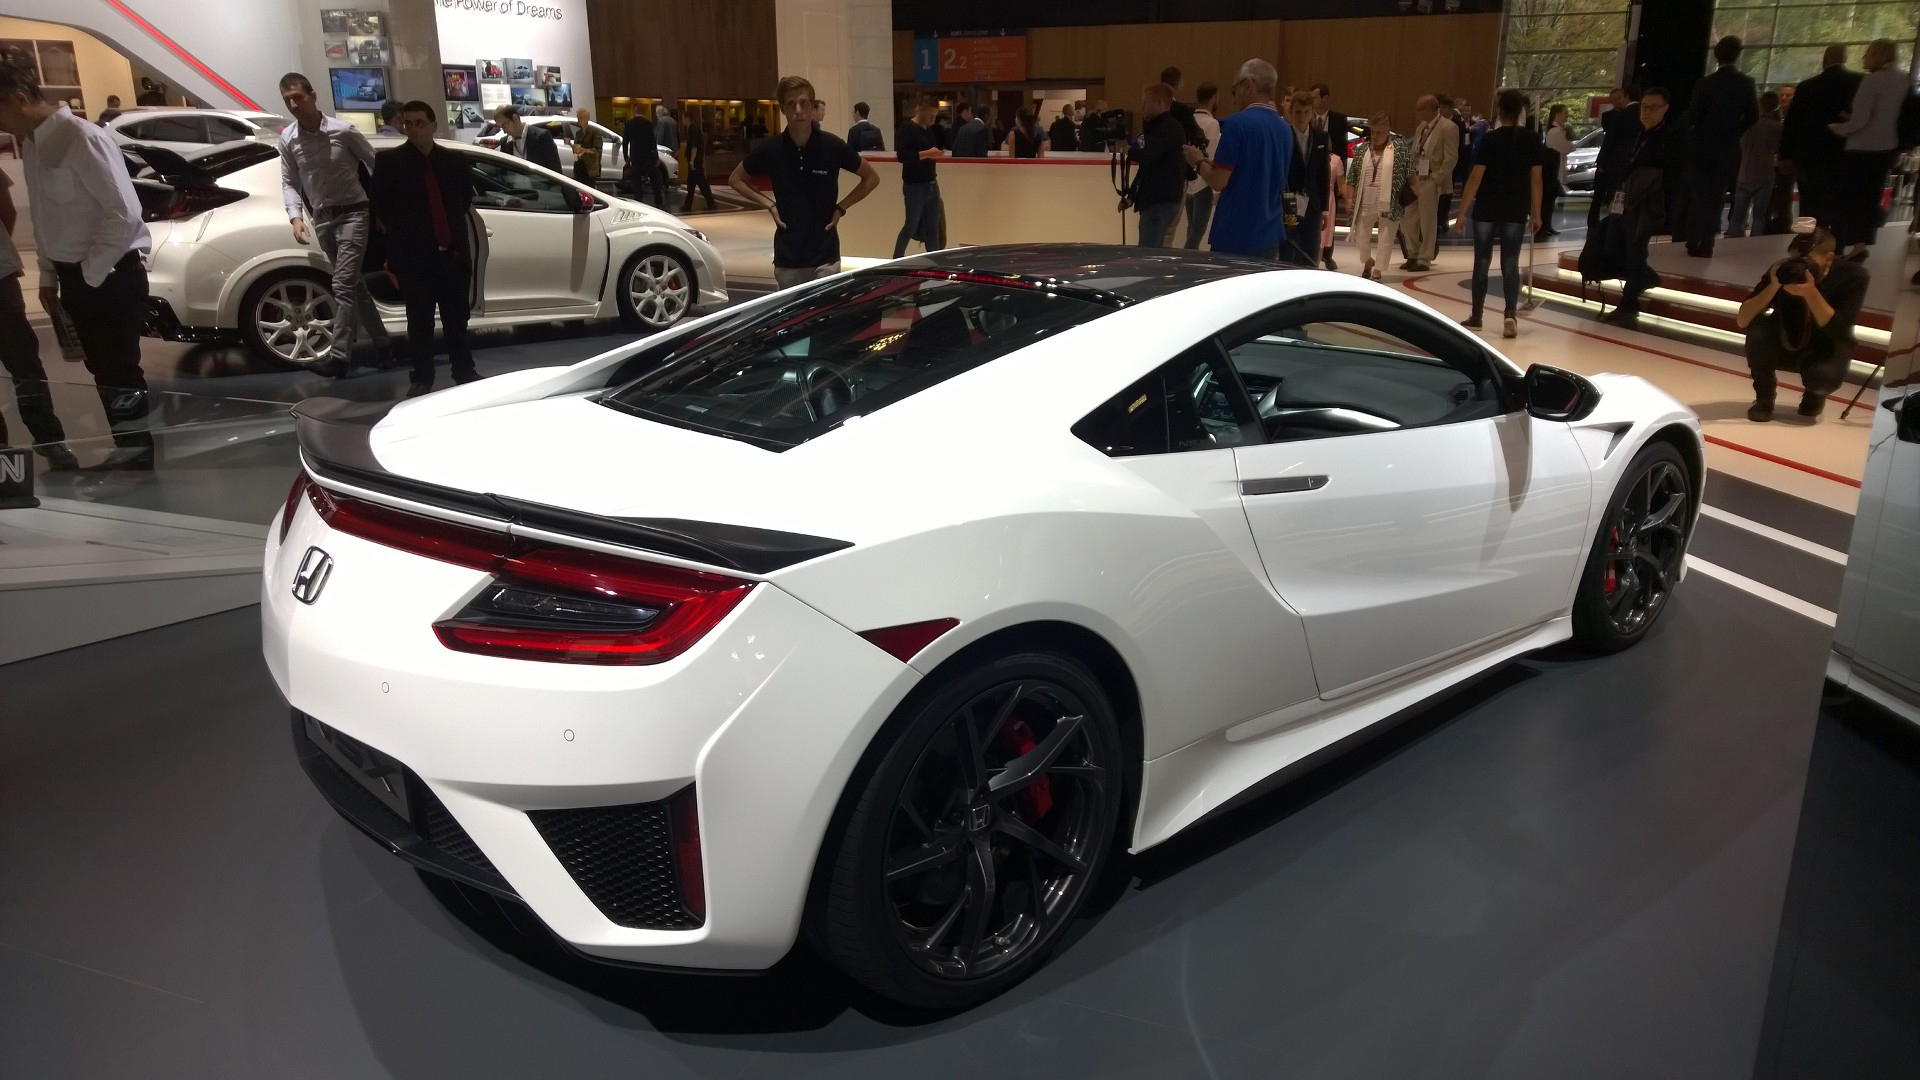 Honda NSX - arrière / rear - 2016 - Mondial Auto - photo ELJ DM